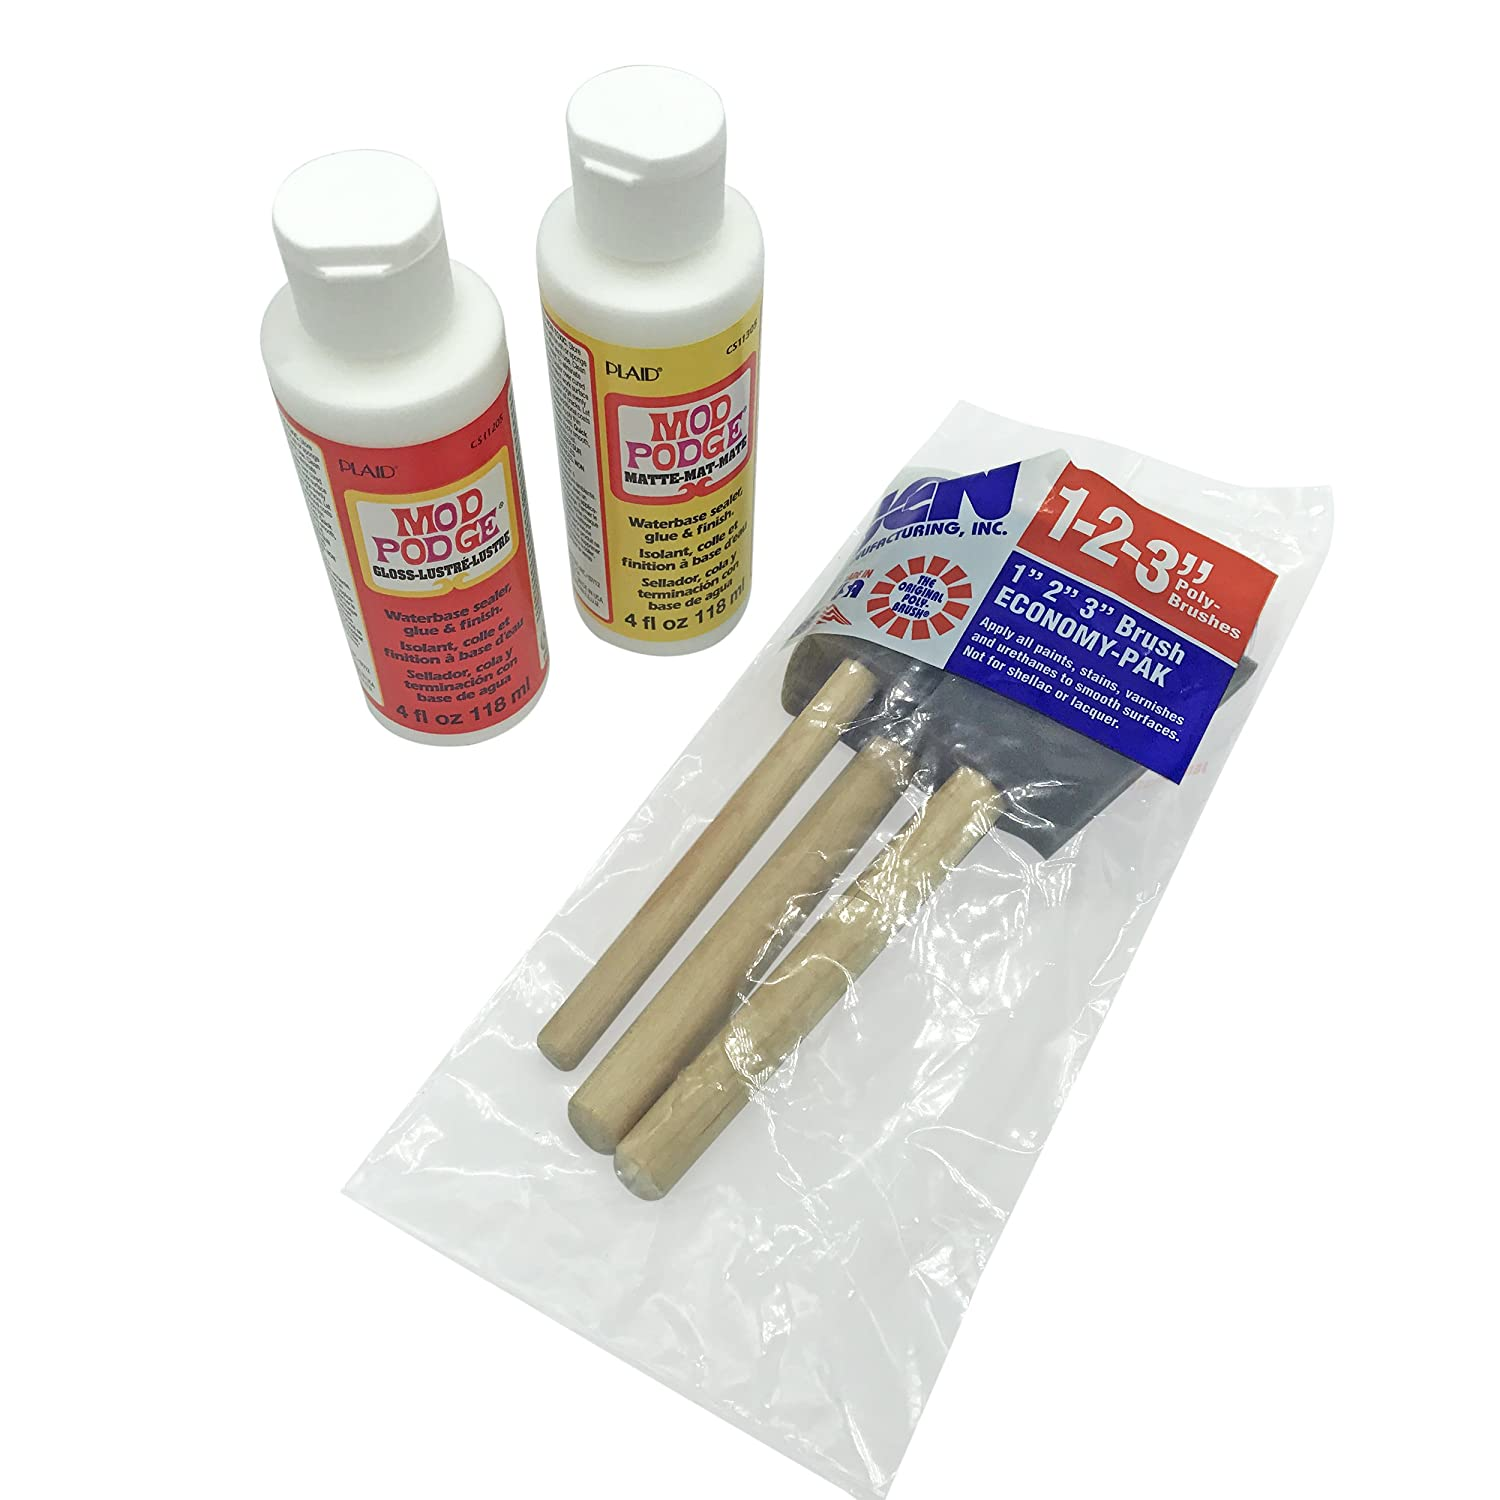 Mod Podge Gloss and Matte Starter Bundle Kit w/Poly Foam Brushes to Paint -  Glue Waterbase Sealer/Bonding, Protect DIY Arts and Craft Projects, Puzzle